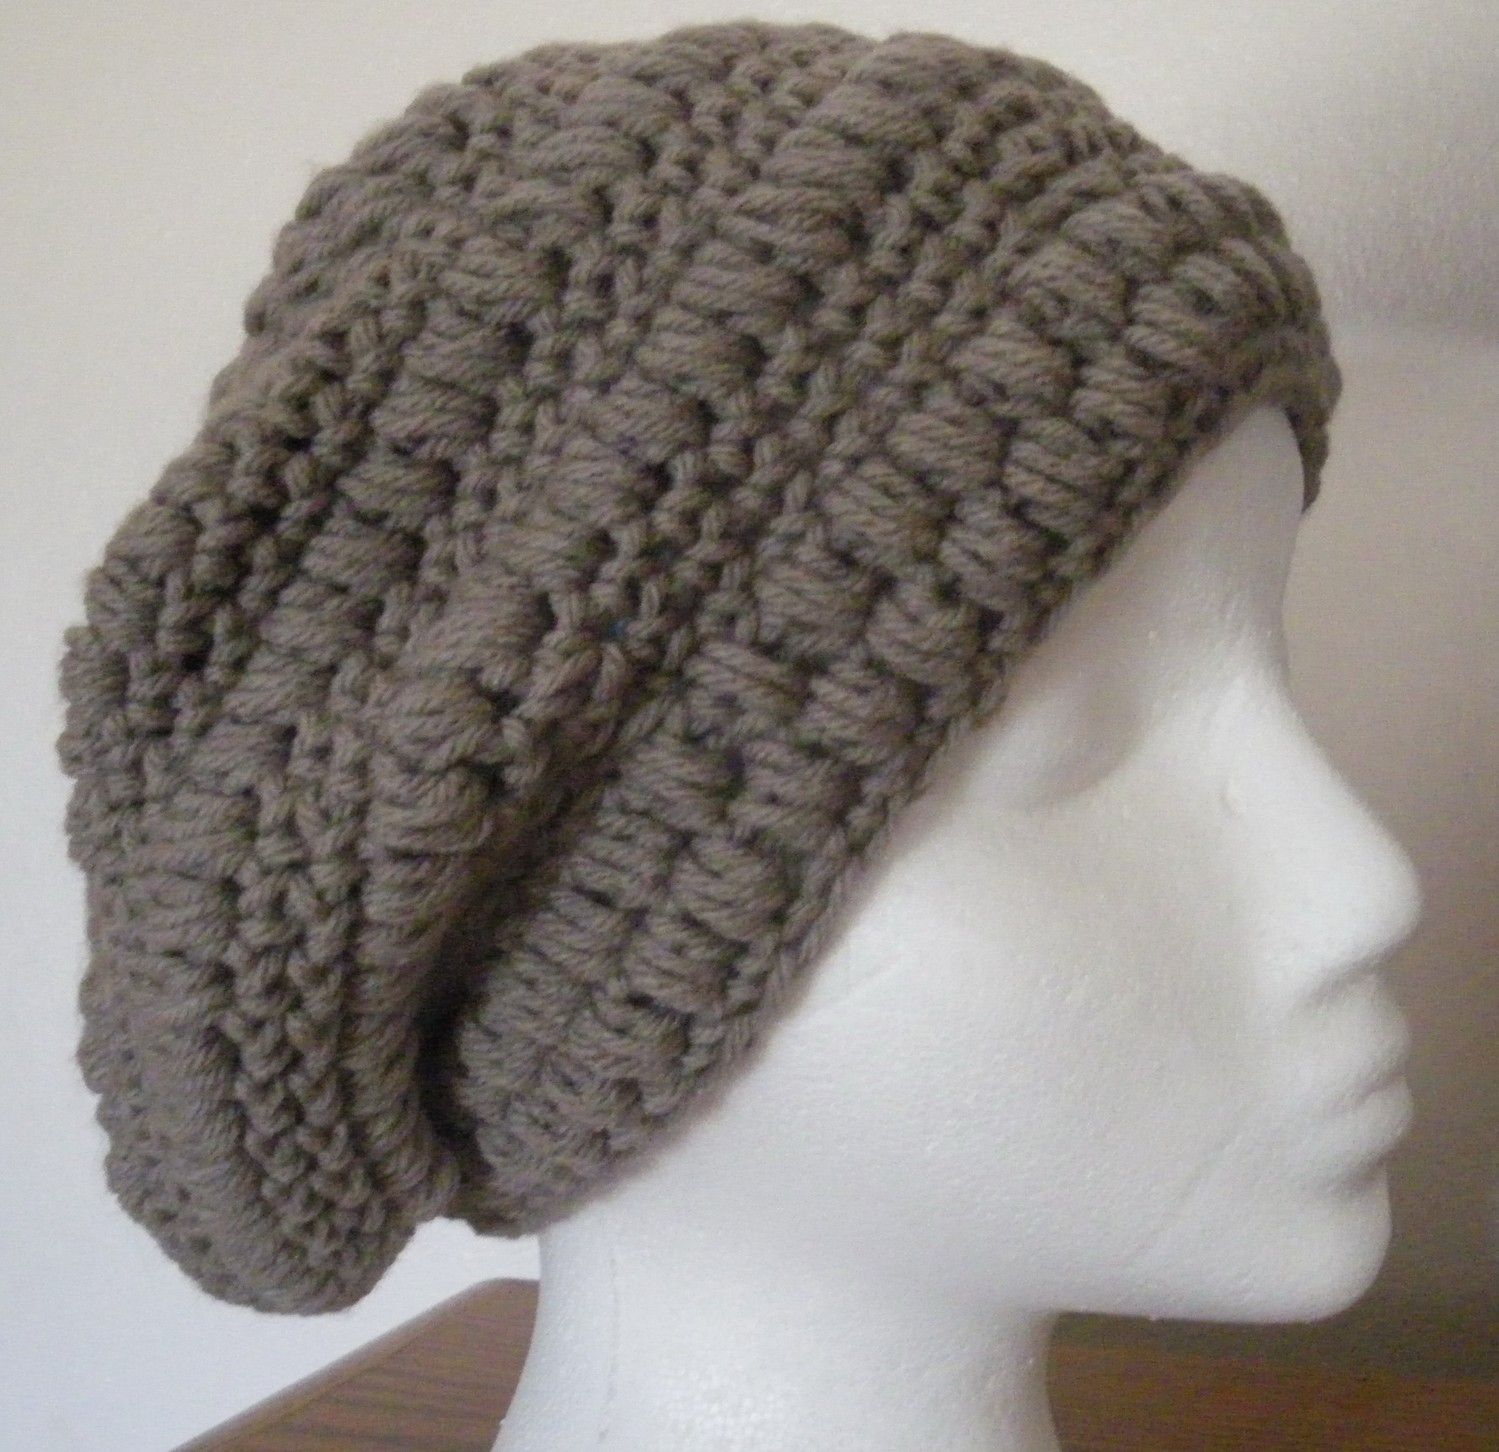 Mens crochet fedora pattern free items similar to crochet mens crochet fedora pattern free items similar to crochet slouchy hat beanie rasta camel gray and off crochet pinterest free items slouchy hat bankloansurffo Image collections